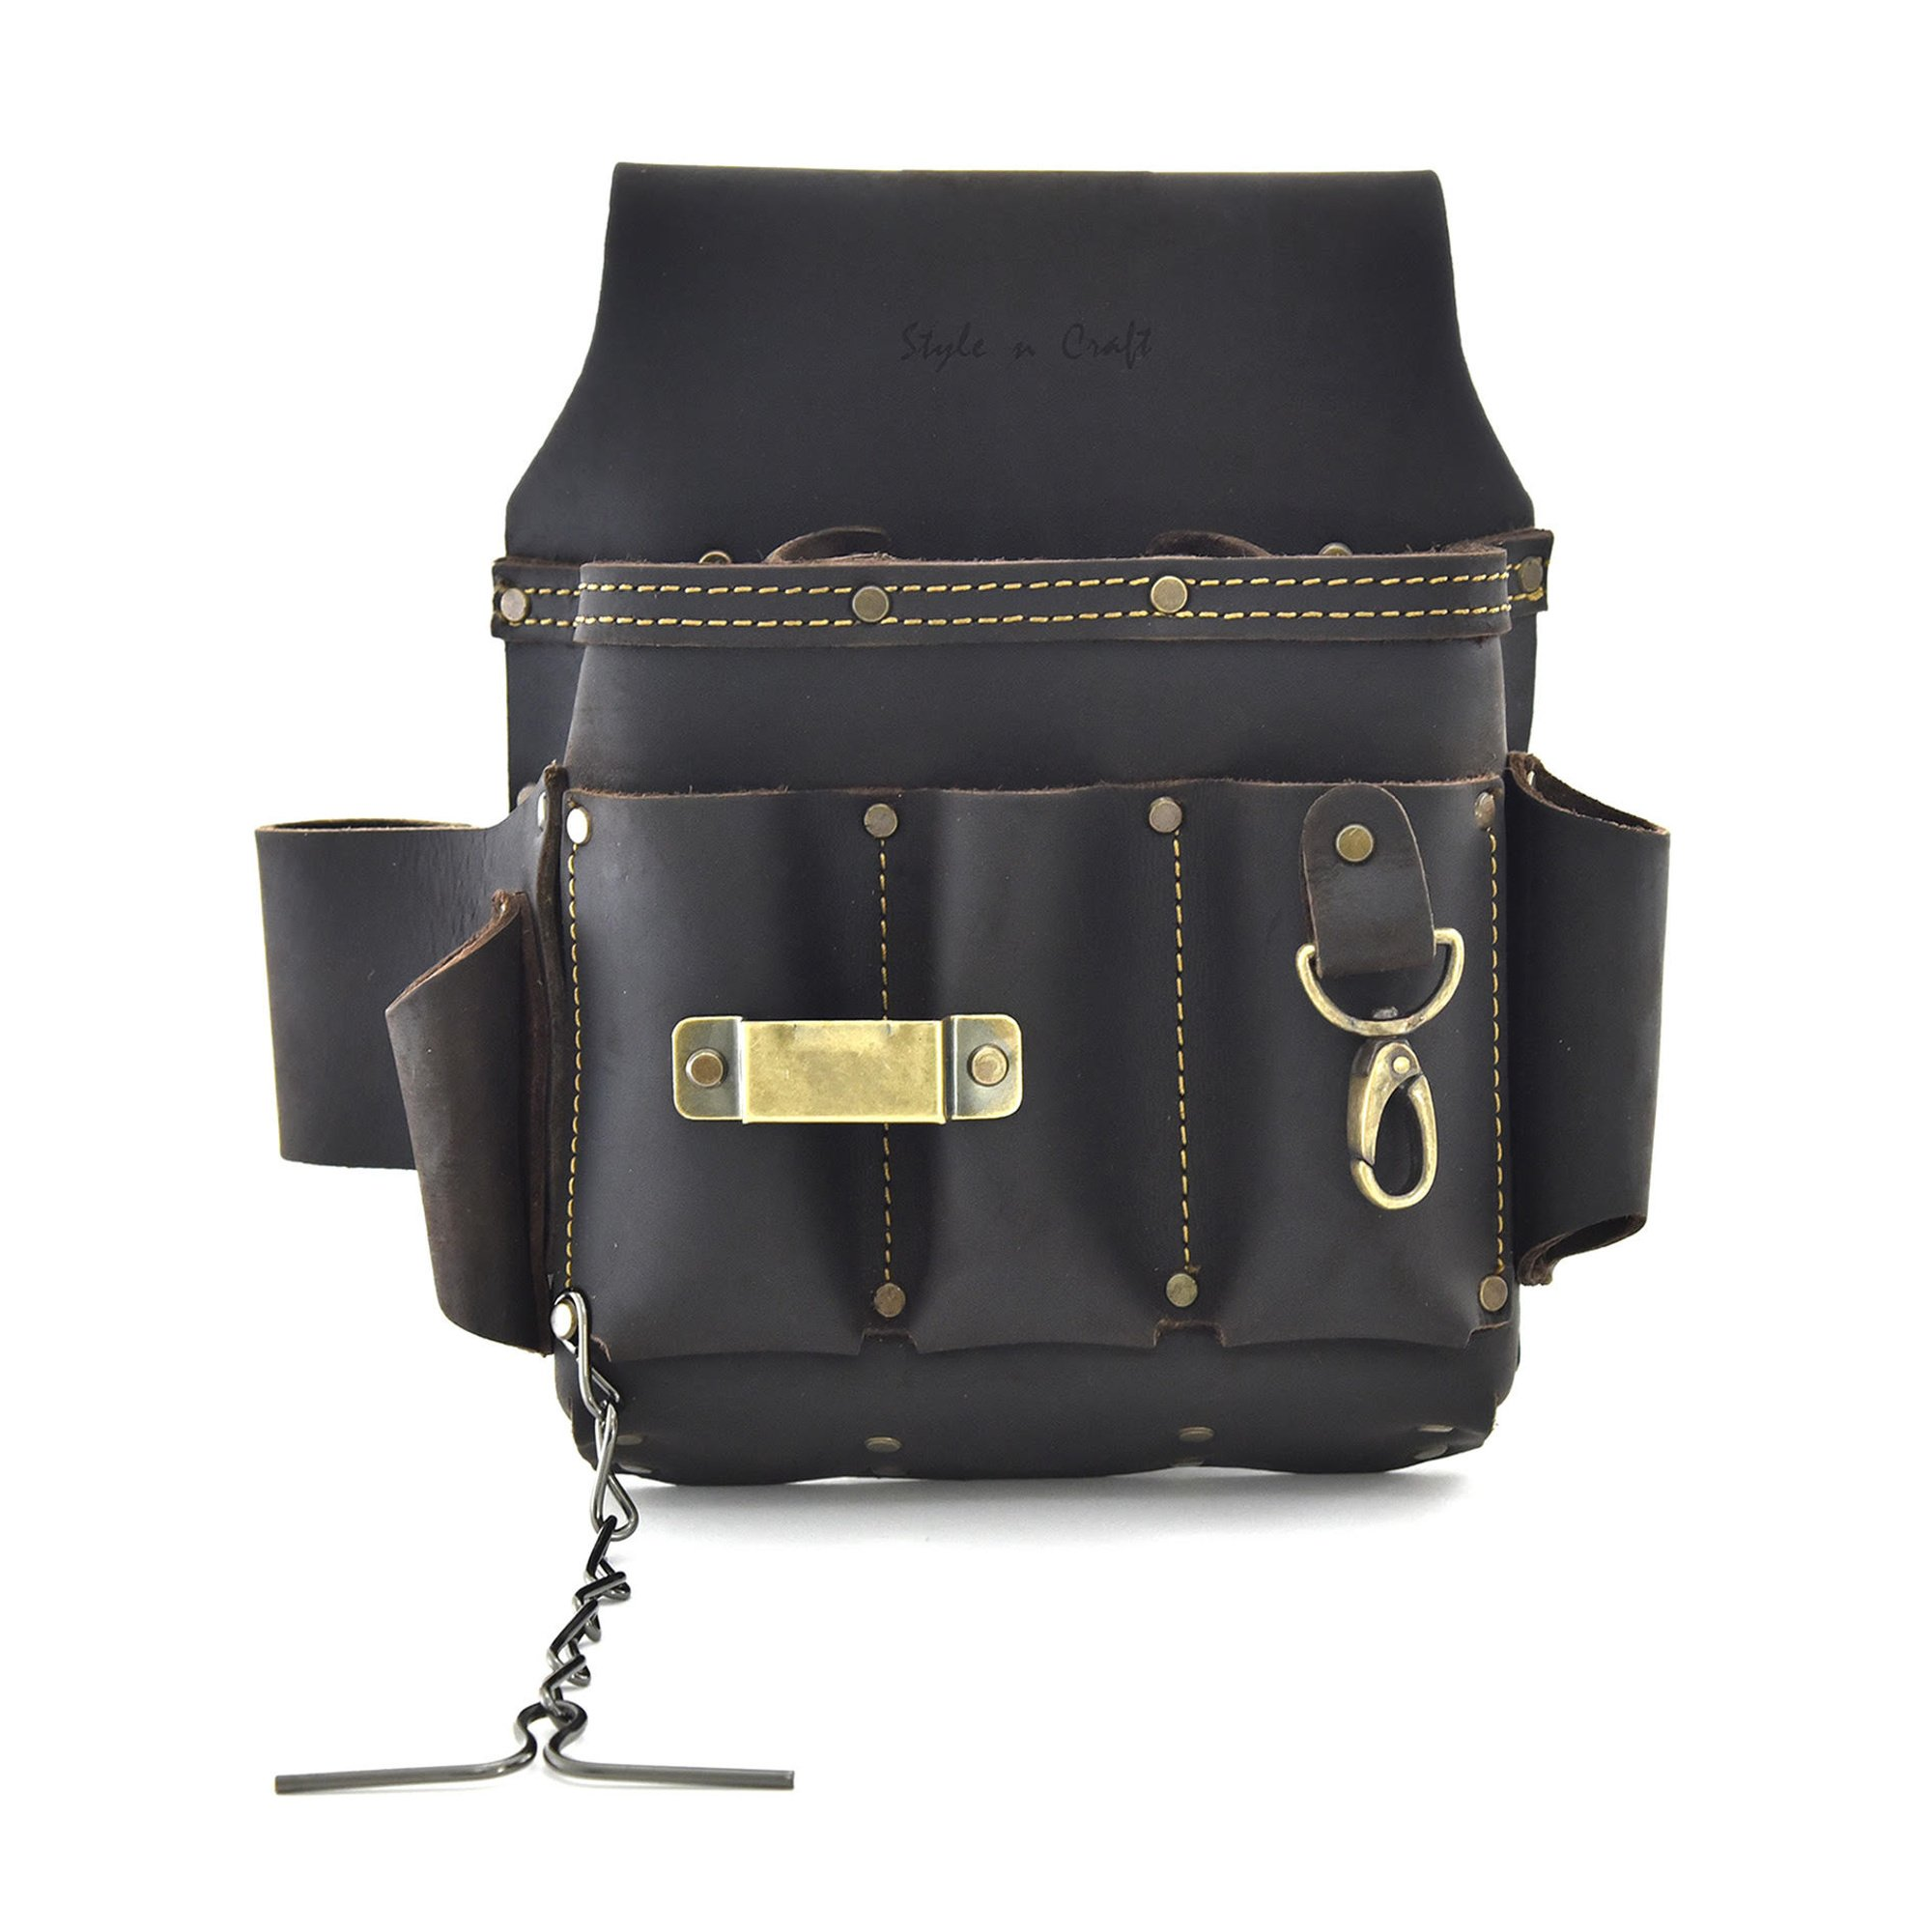 Style n Craft 70-603 10 Pocket Heavy Duty Oiled Top Grain Leather Electrician's/Contractor's Tool Pouch by Style N Craft